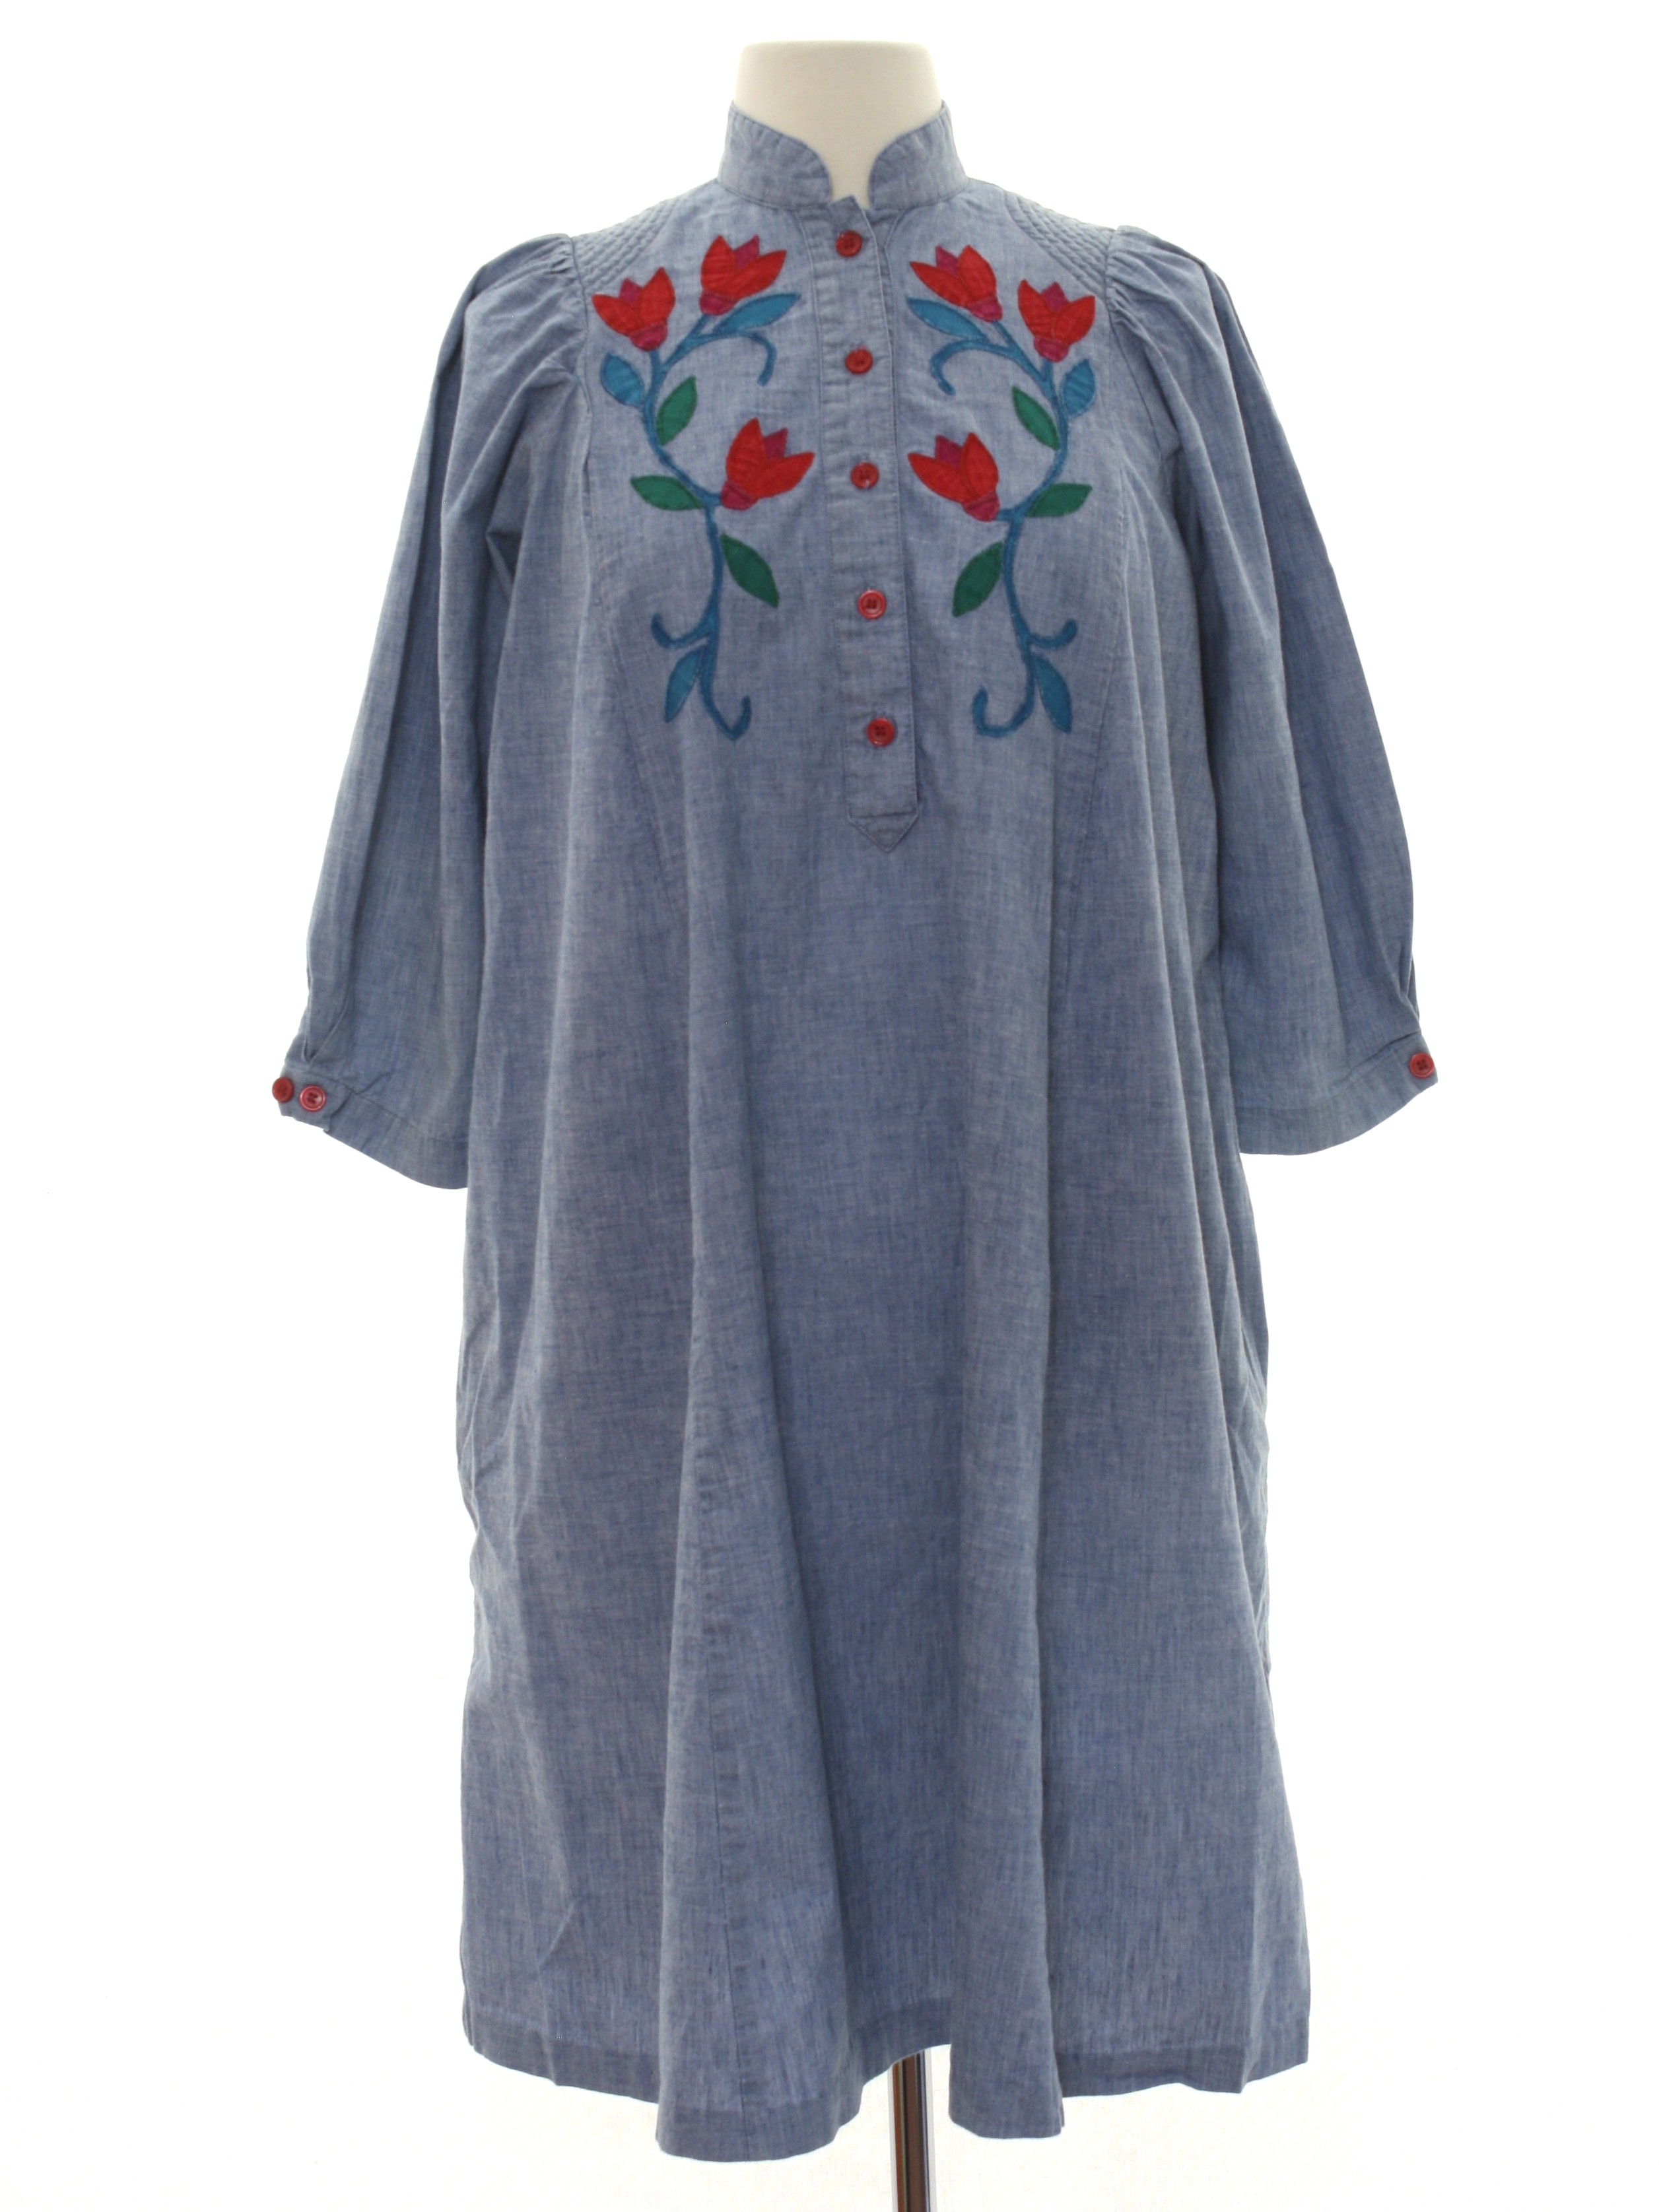 8f8f48dadf3 1980 s Retro Hippie Dress  70s style (made in 80s) -Salamander- Womens  chambray blue background cotton button cuffs 3 4 length sleeve a-line mid  length ...